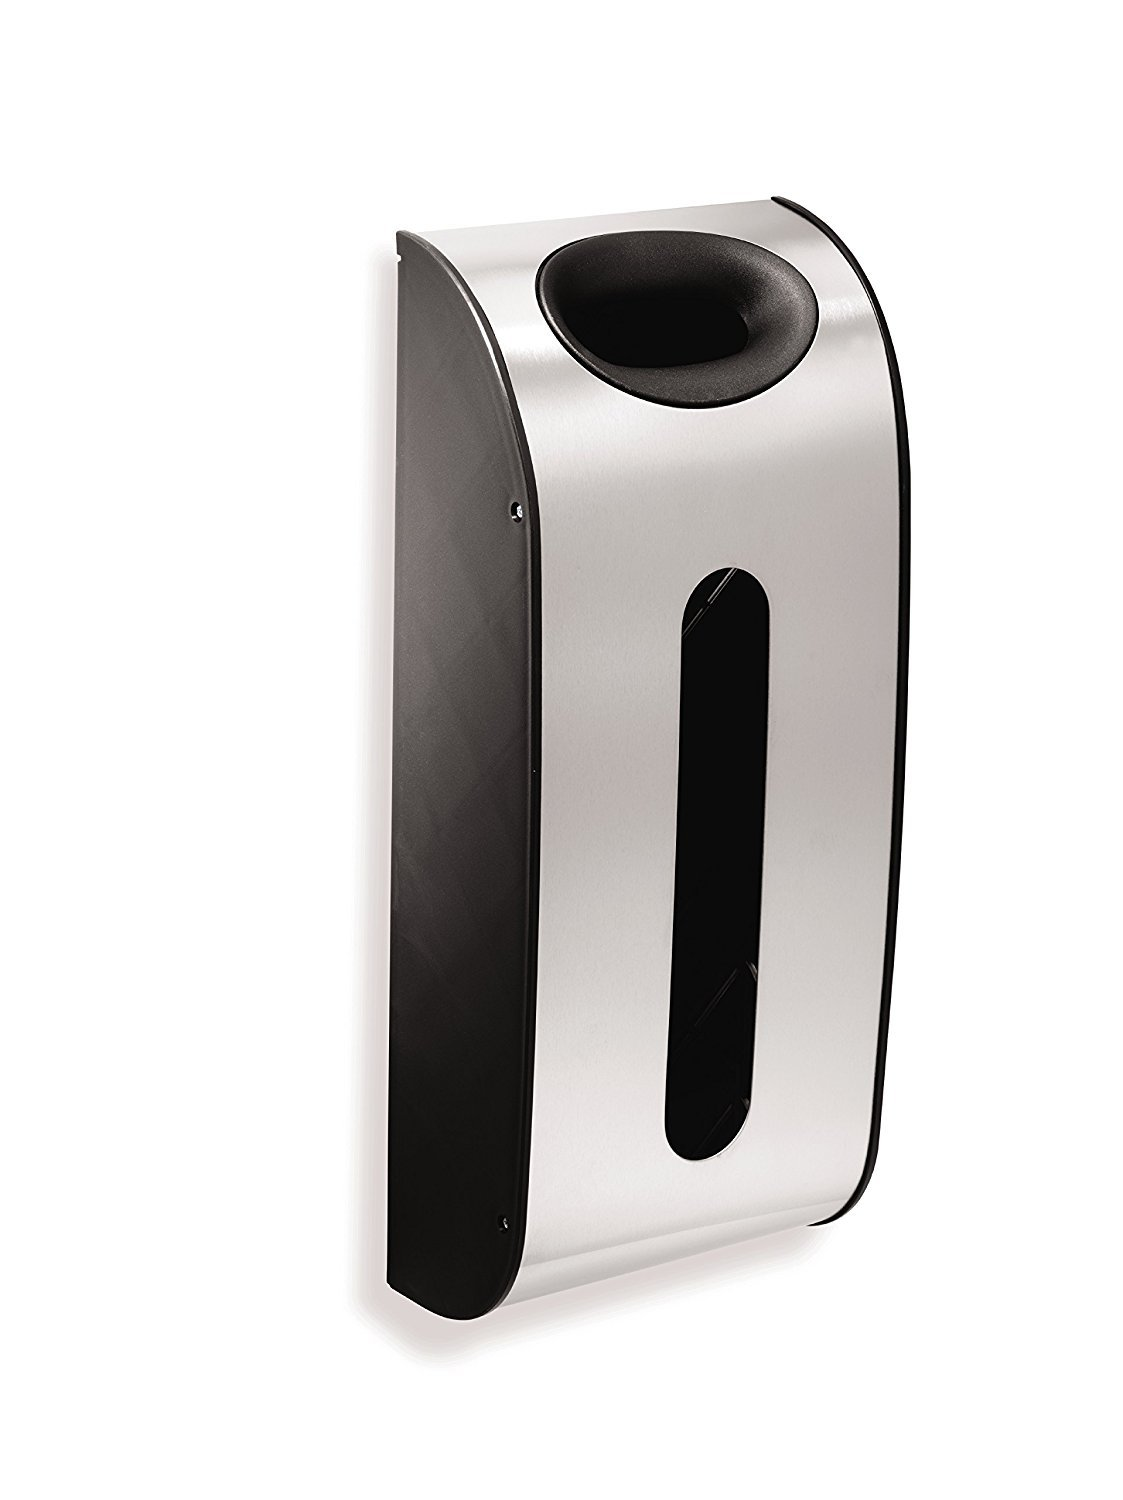 Simplehuman - Soporte de pared para guardar bolsas, acero inoxidable, color plateado, negro